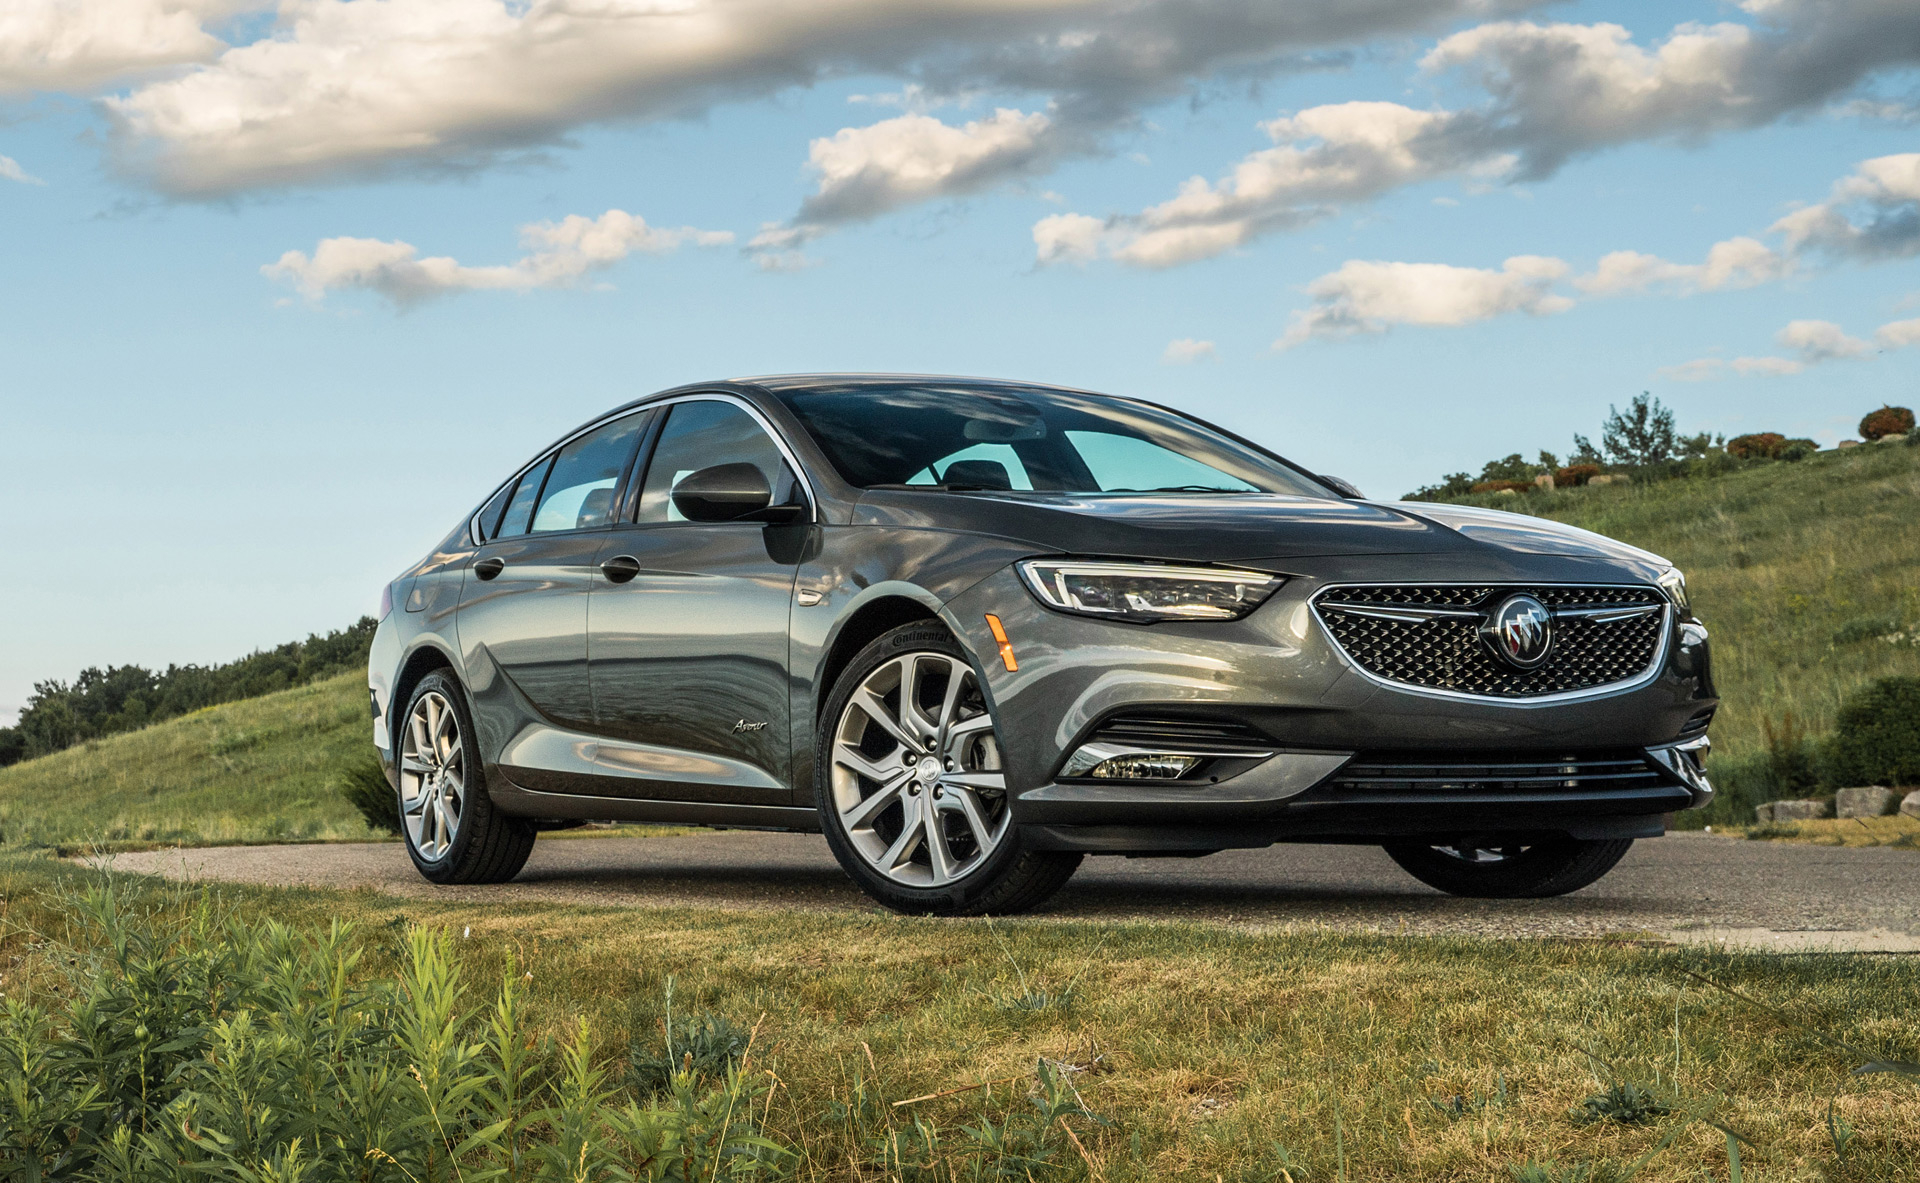 2019 Buick Regal Sportback Avenir: A Mid-Size, Full-Luxe 2022 Buick Regal Pictures, Price, Reviews